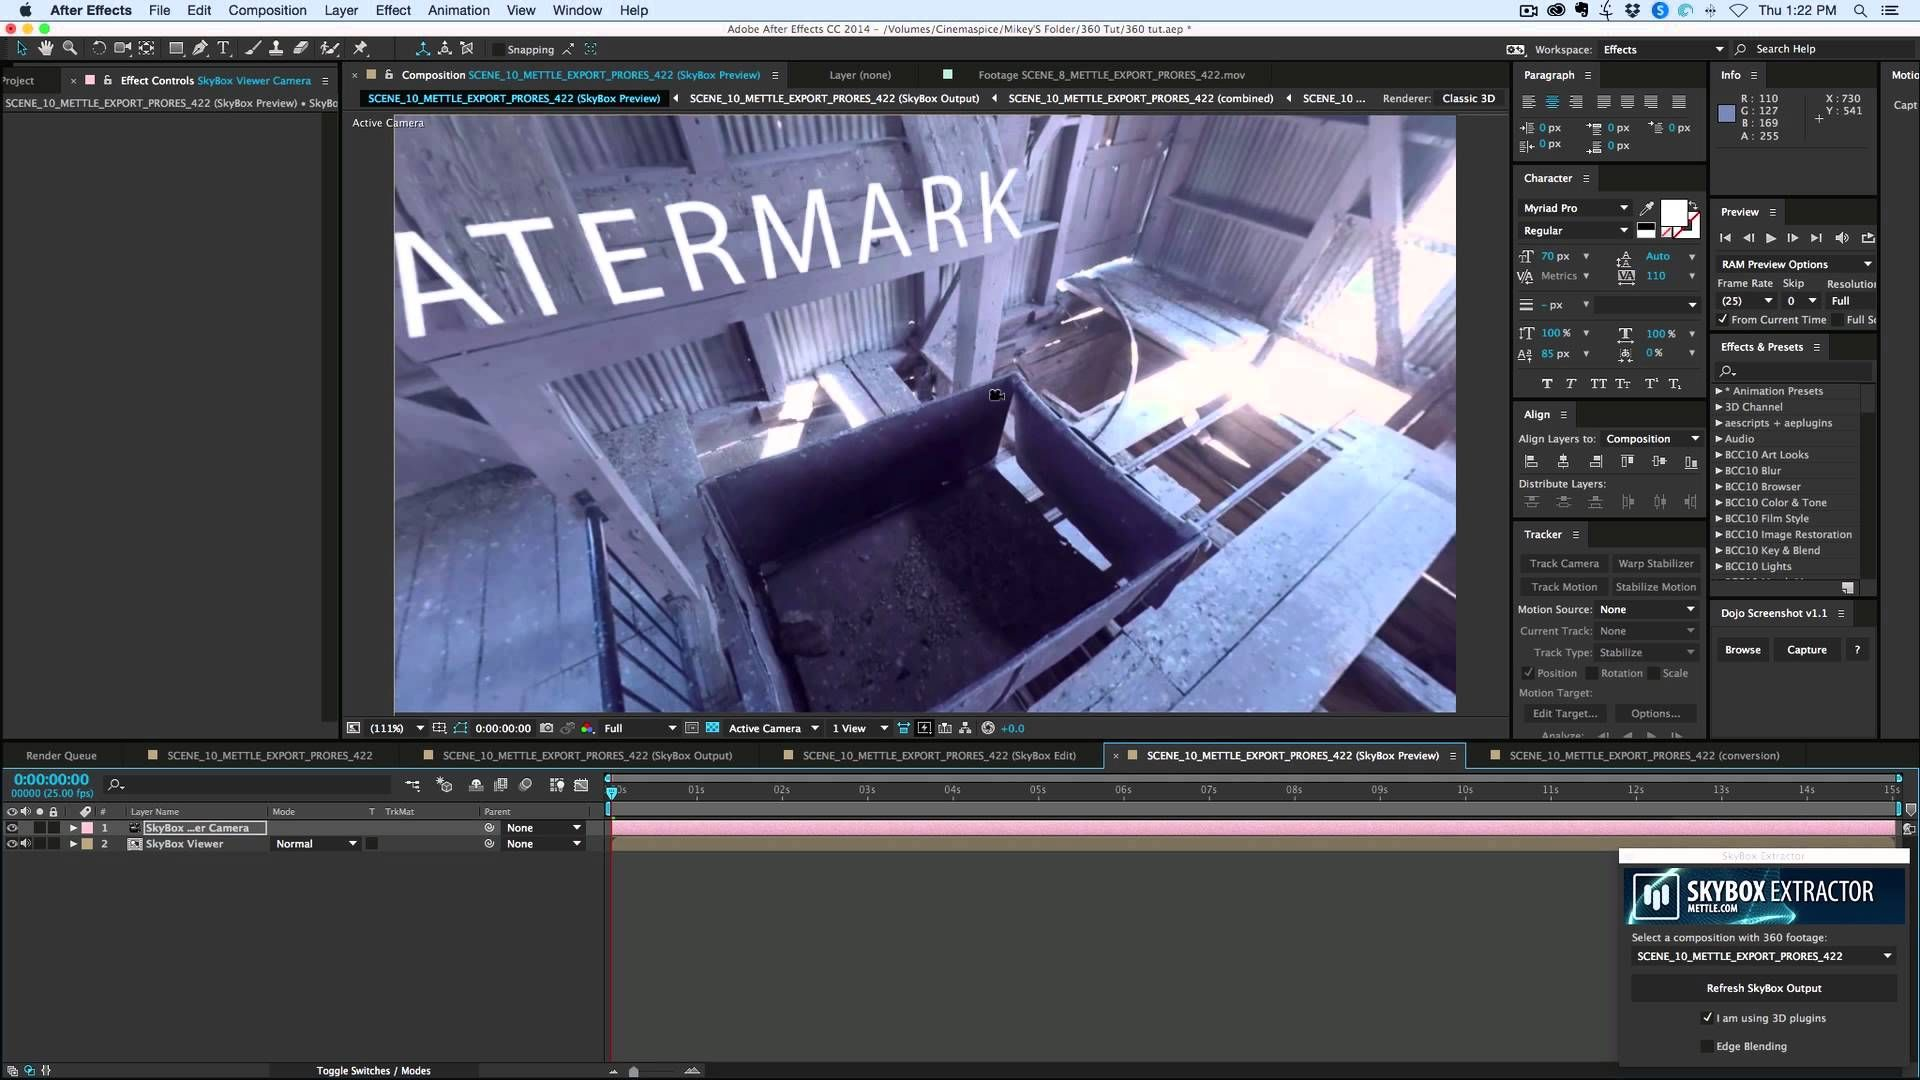 360 Video in After Effects is easy to work with using the